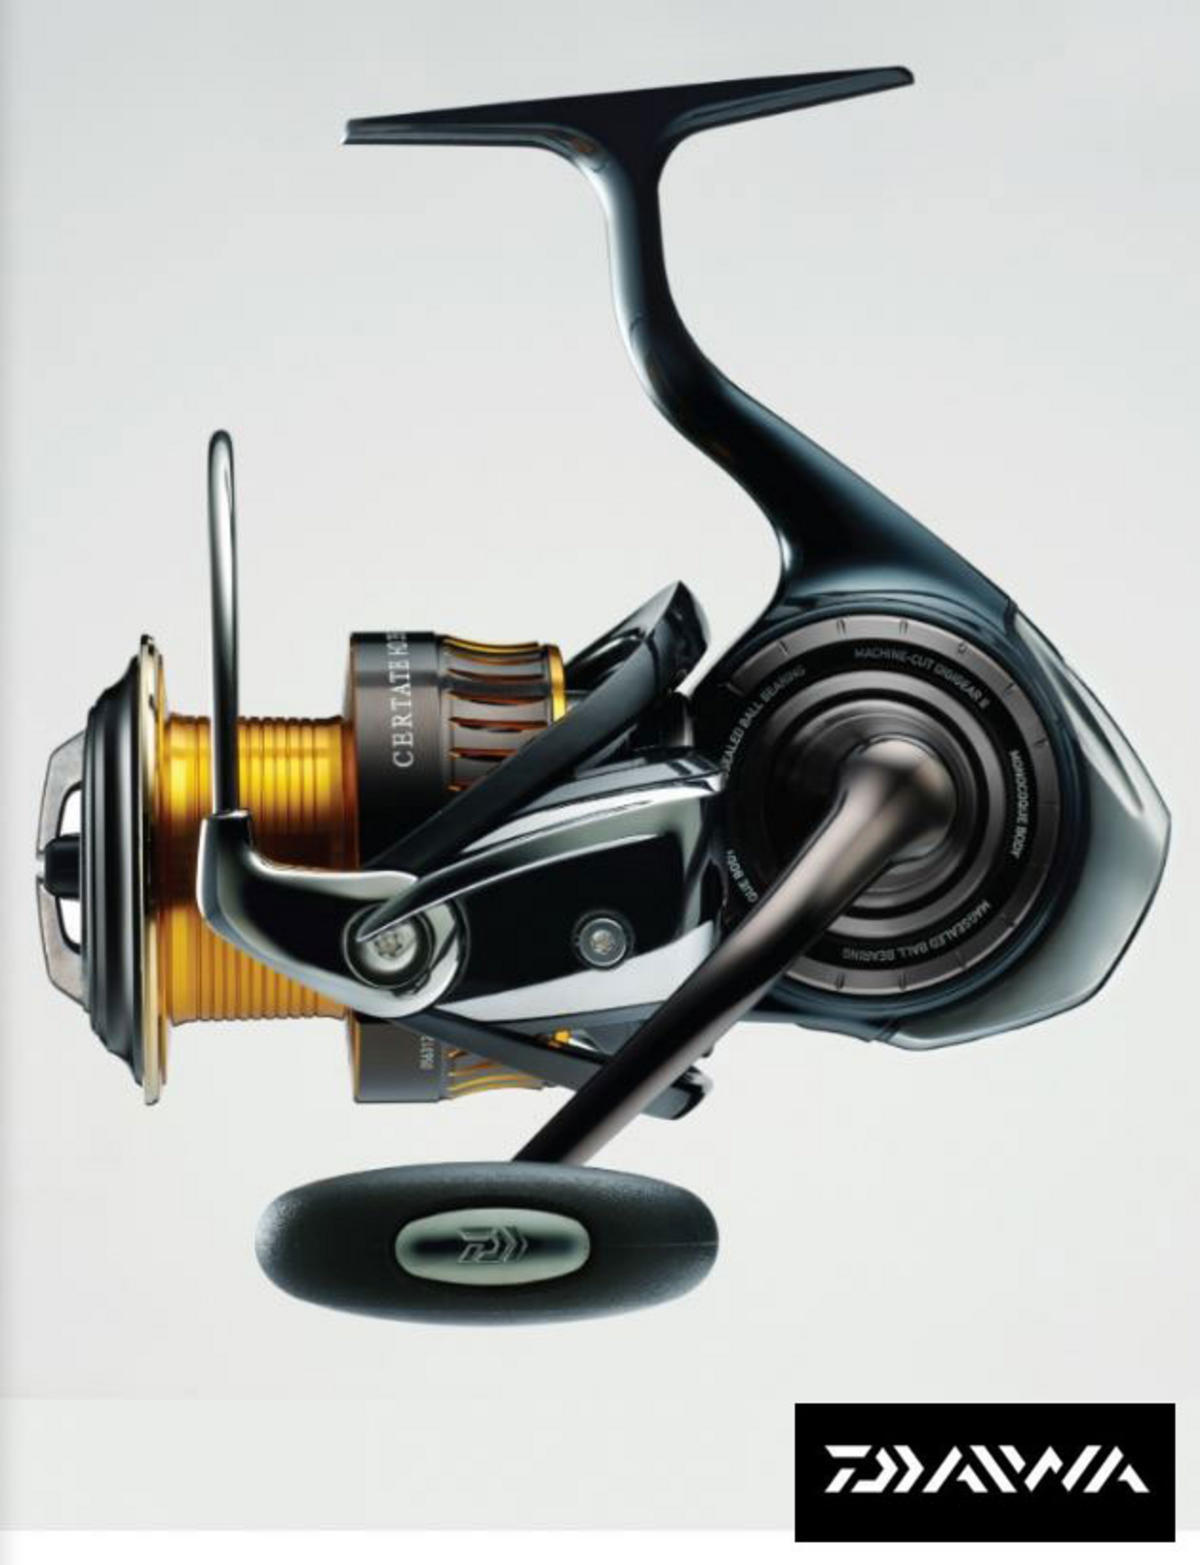 New Daiwa 16 Certate 2506H Spinning Reel Model No. 16 CERTATE 2506H